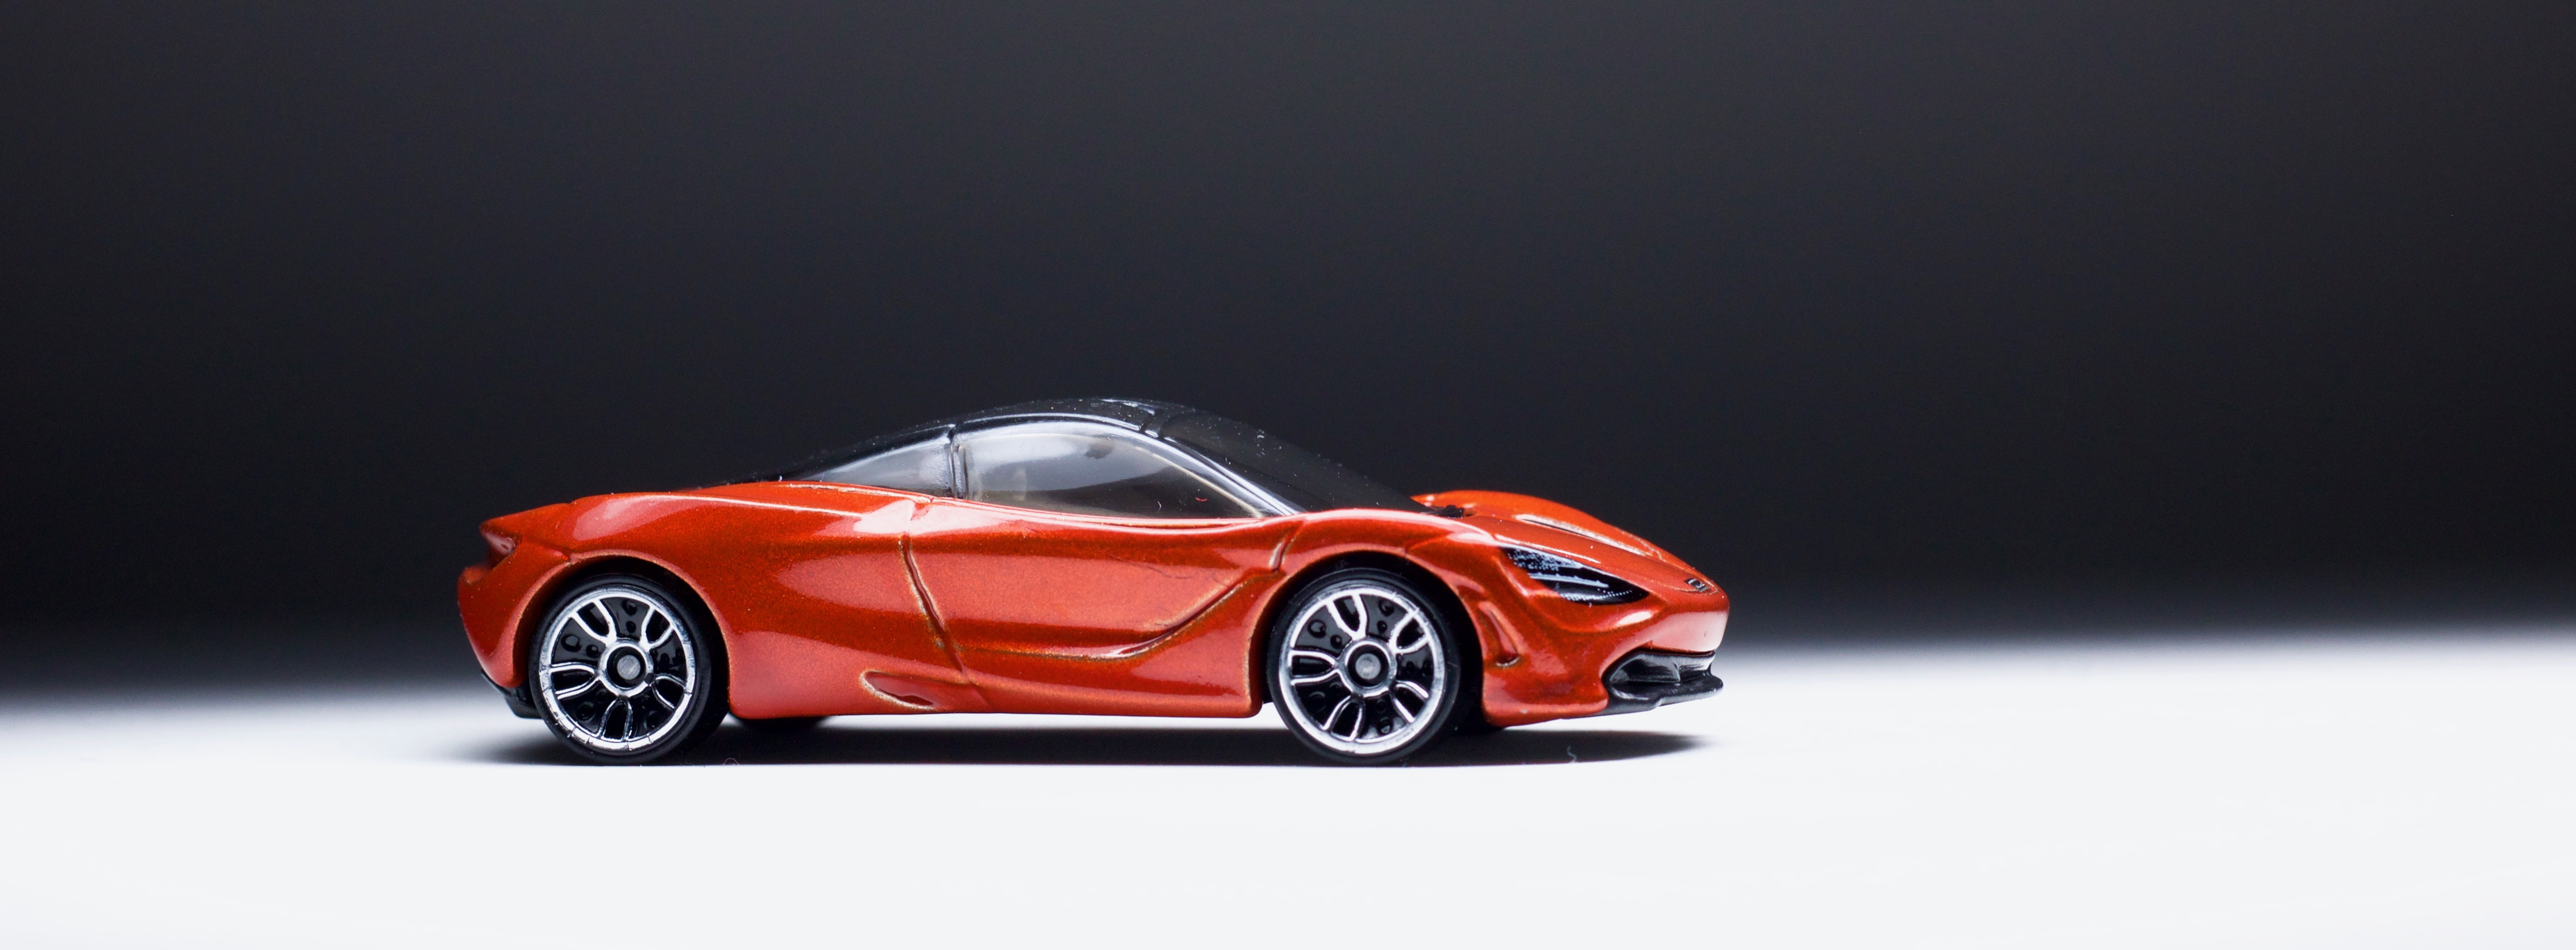 Im Just Not Feeling The New Hot Wheels Mclaren Tiburon I Mean 720s Hw Mc Laren Its A Cab Forward But See First Gen It Is Mainly Because Of That Thick Backside Strangely What Came To Mind Time